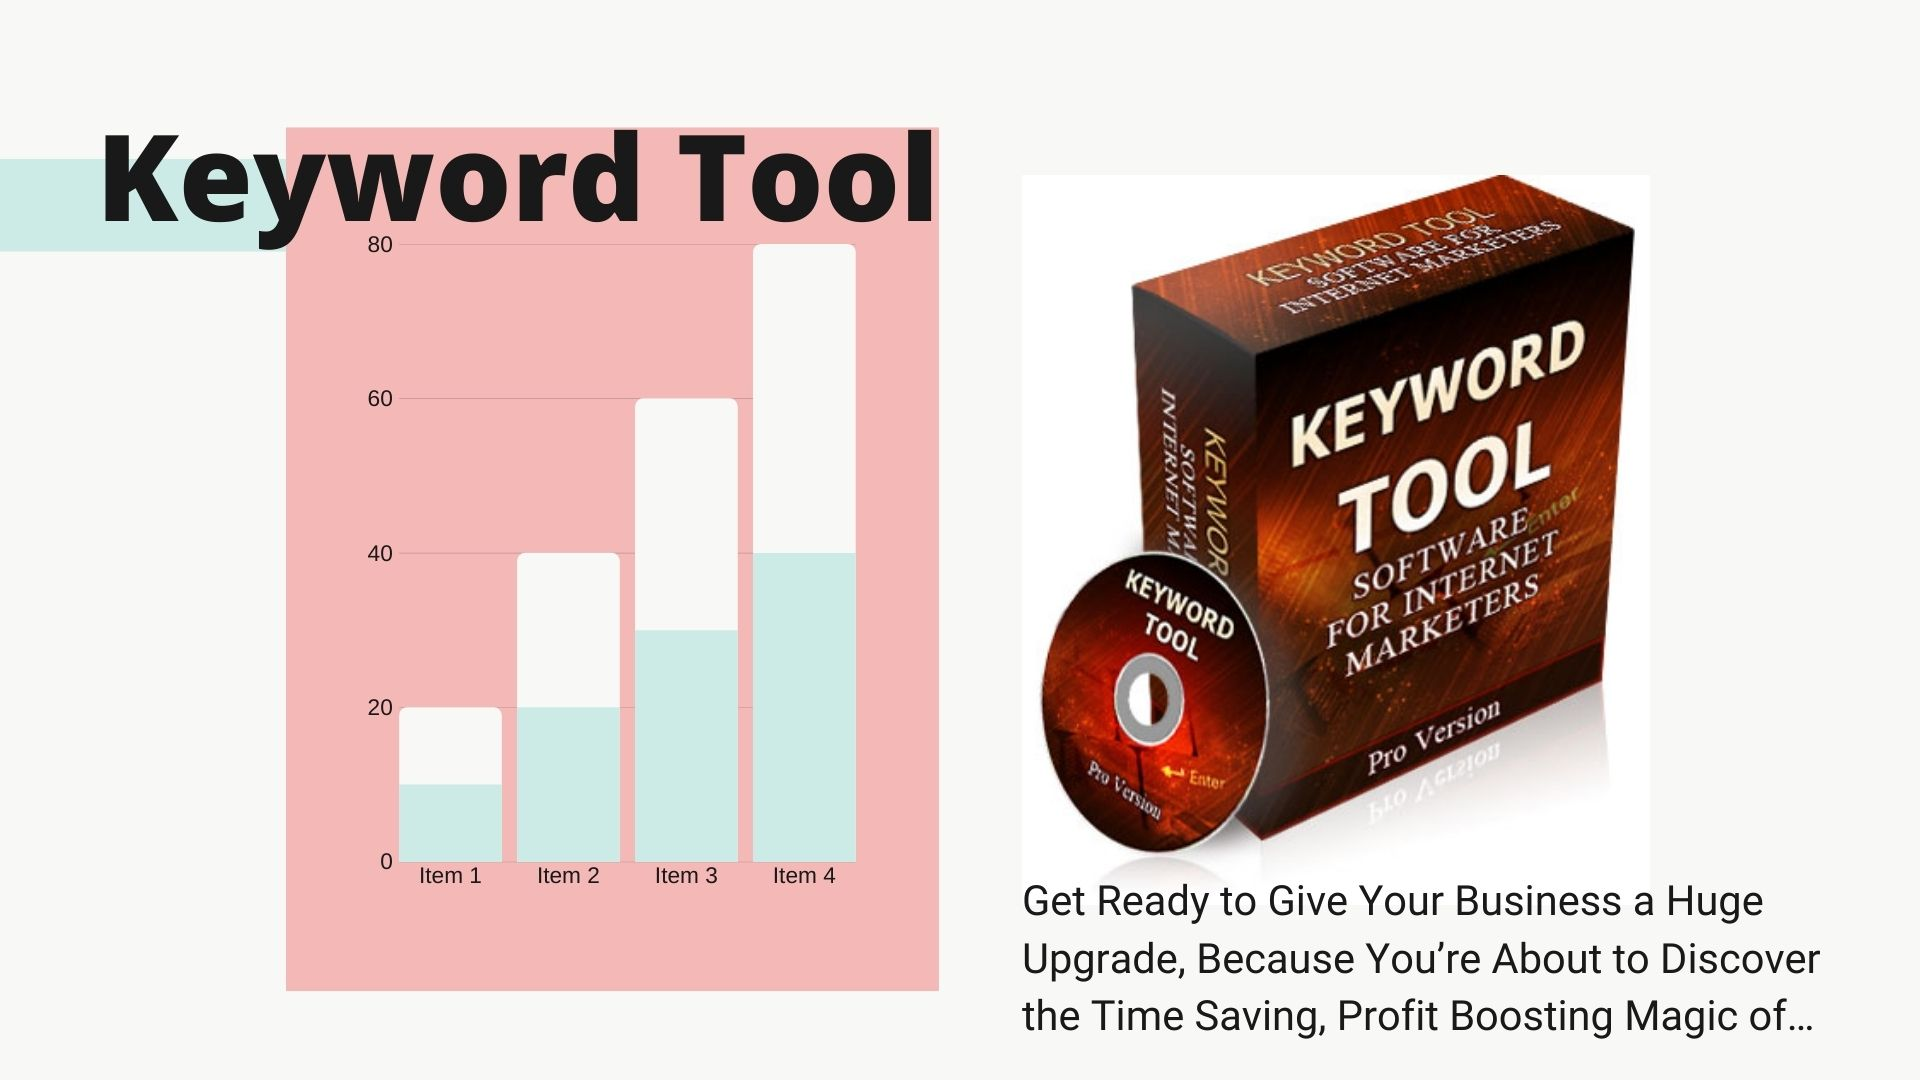 Keyword Tools Get Ready to Give Your Business a Huge Upgrade